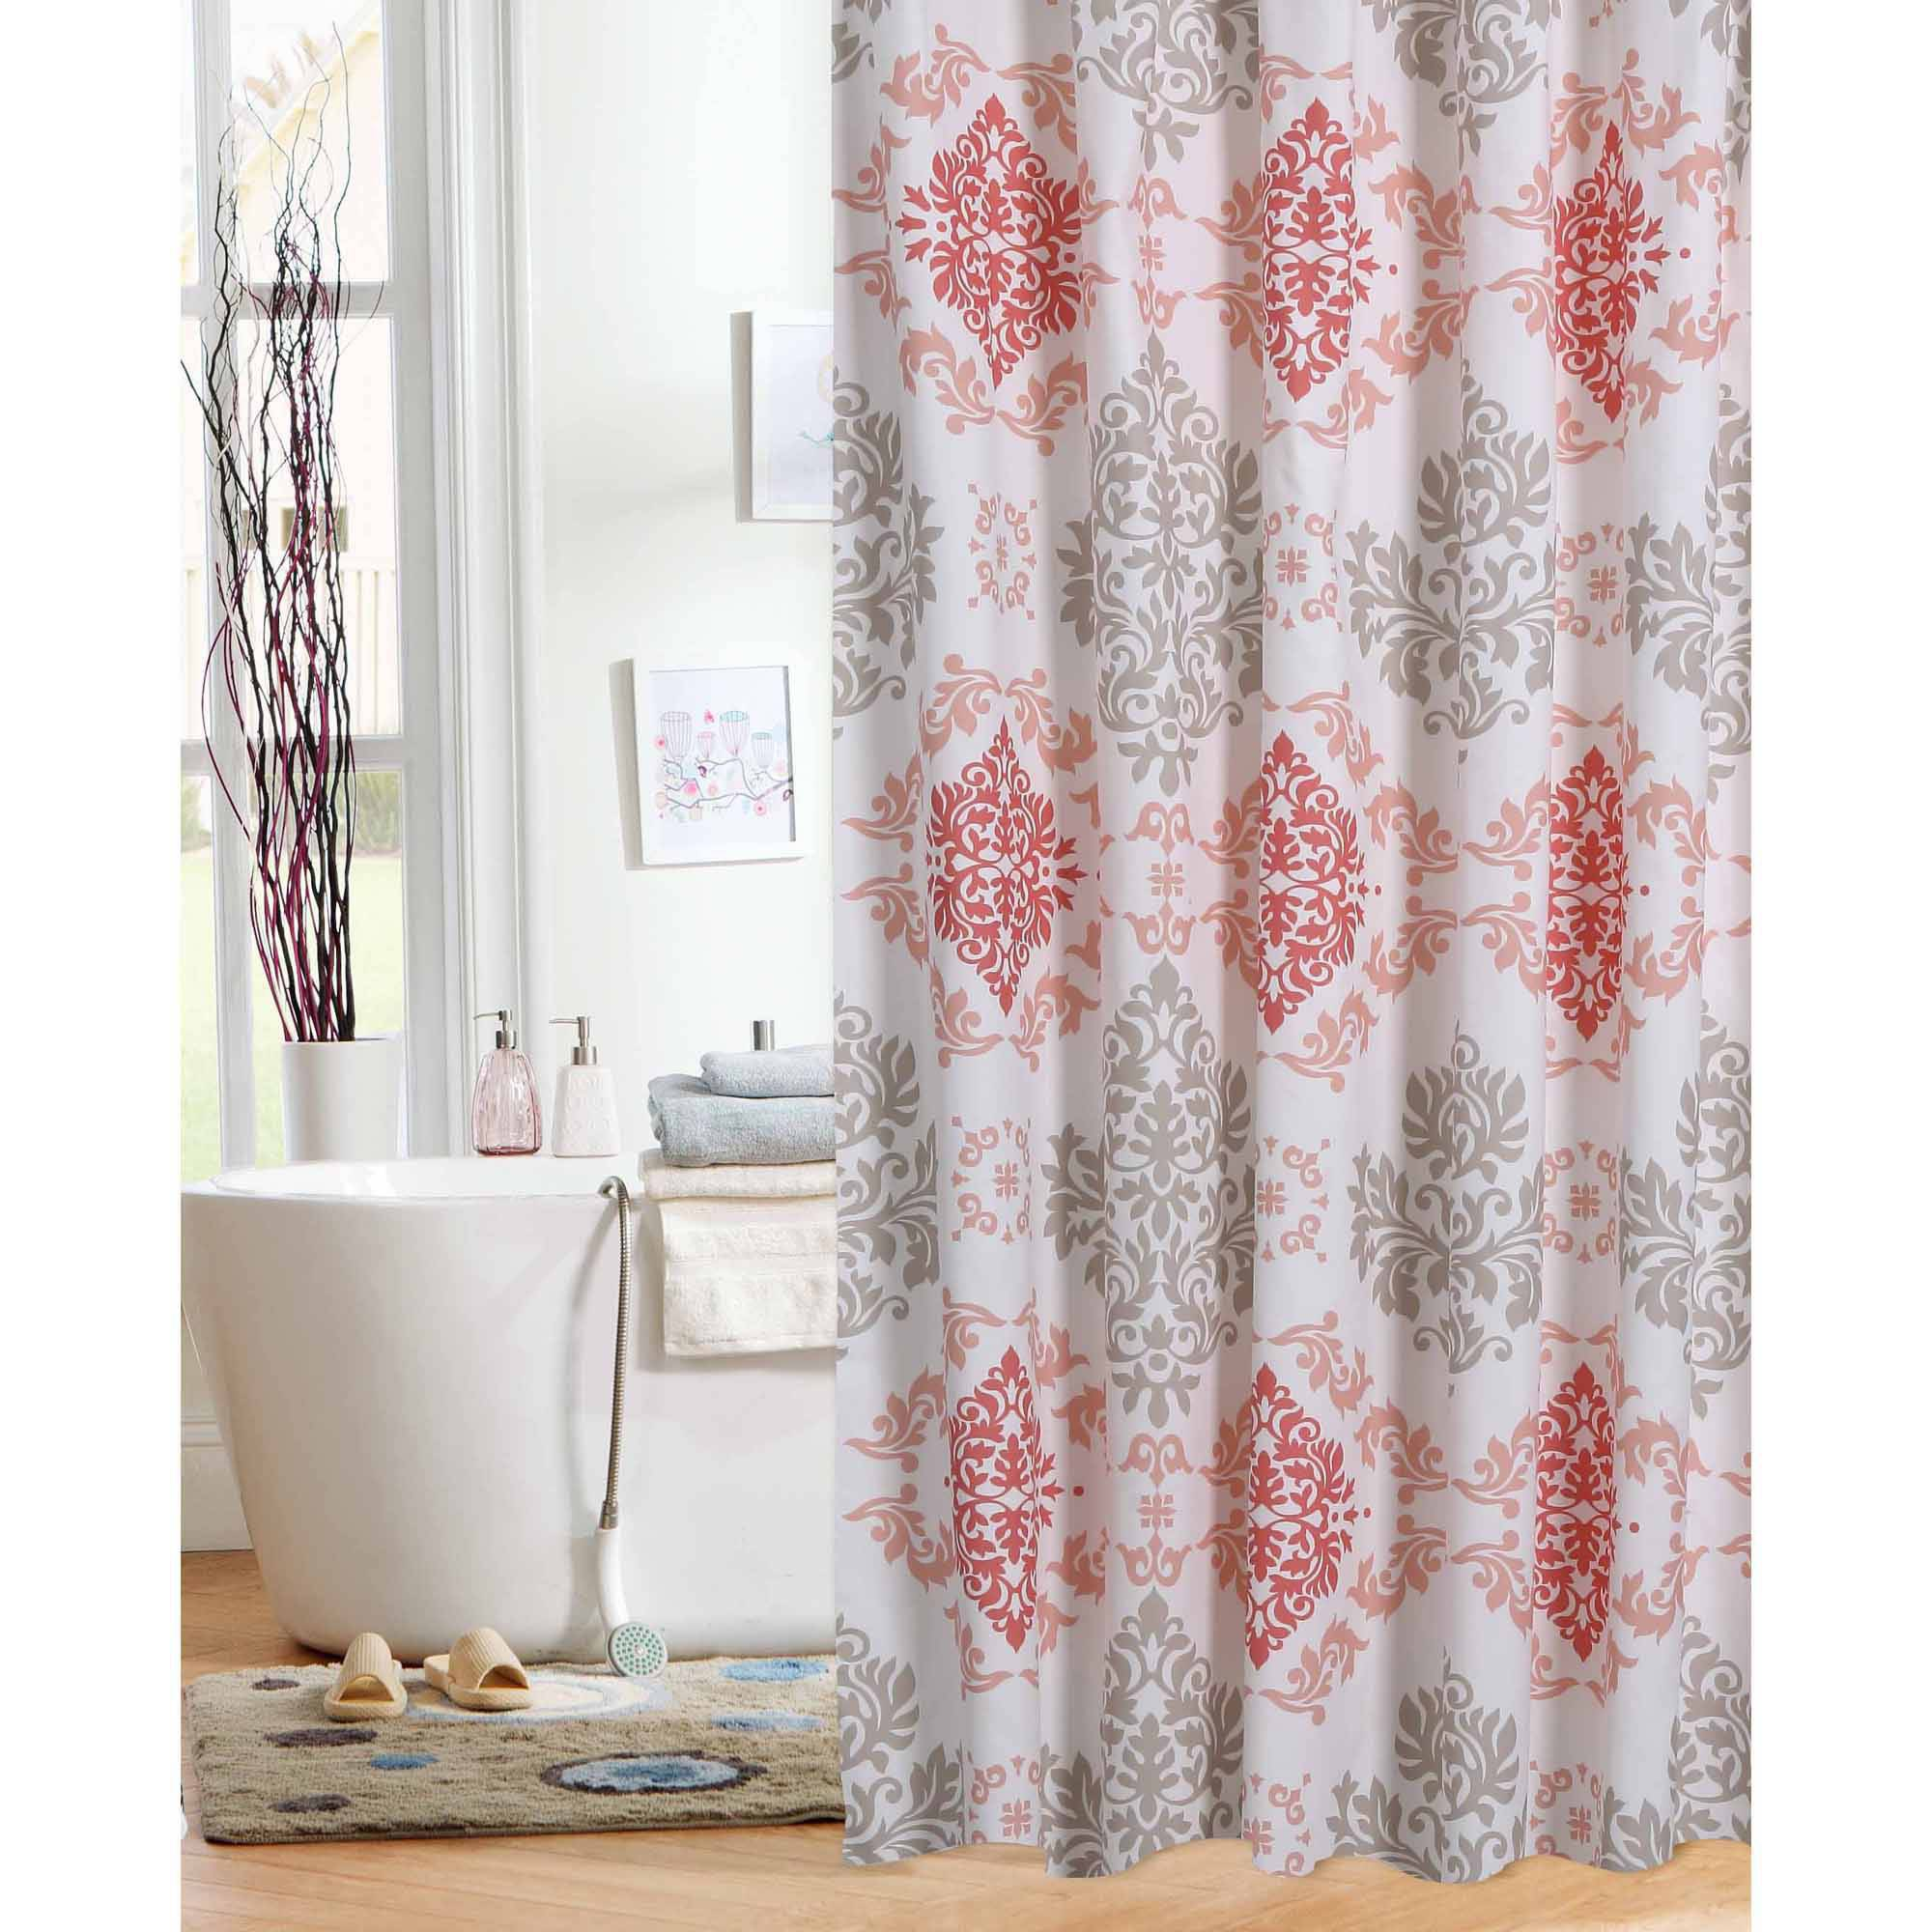 MainstaysTM Fabric Shower Curtain Sleeve